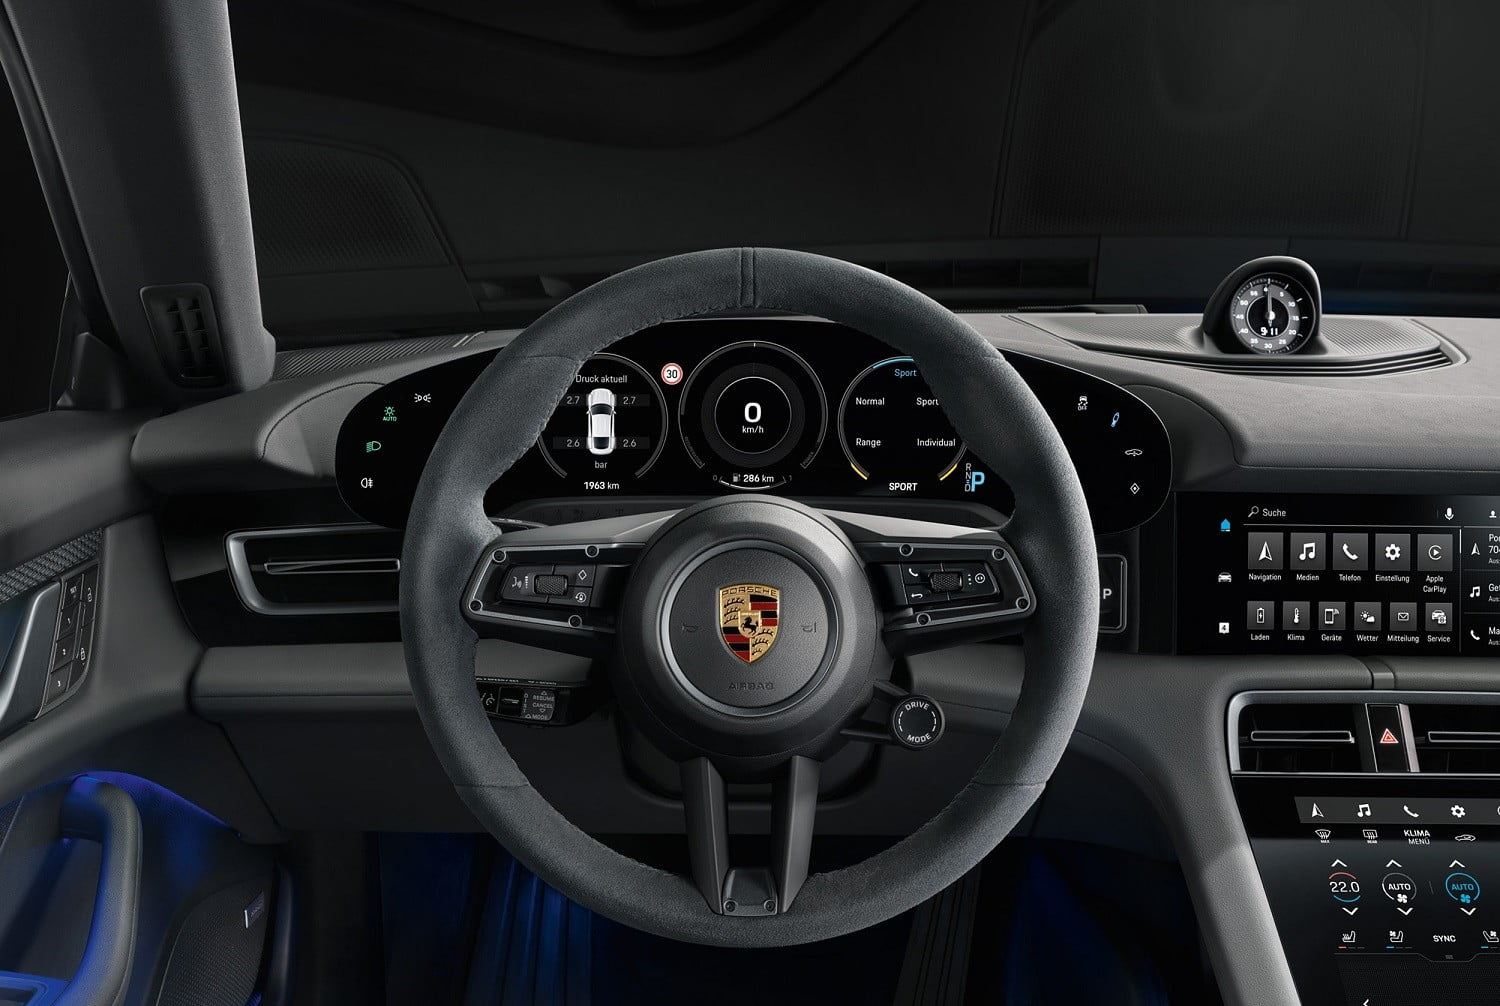 2020 porsche taycan 4s specs performance pricing announced 11